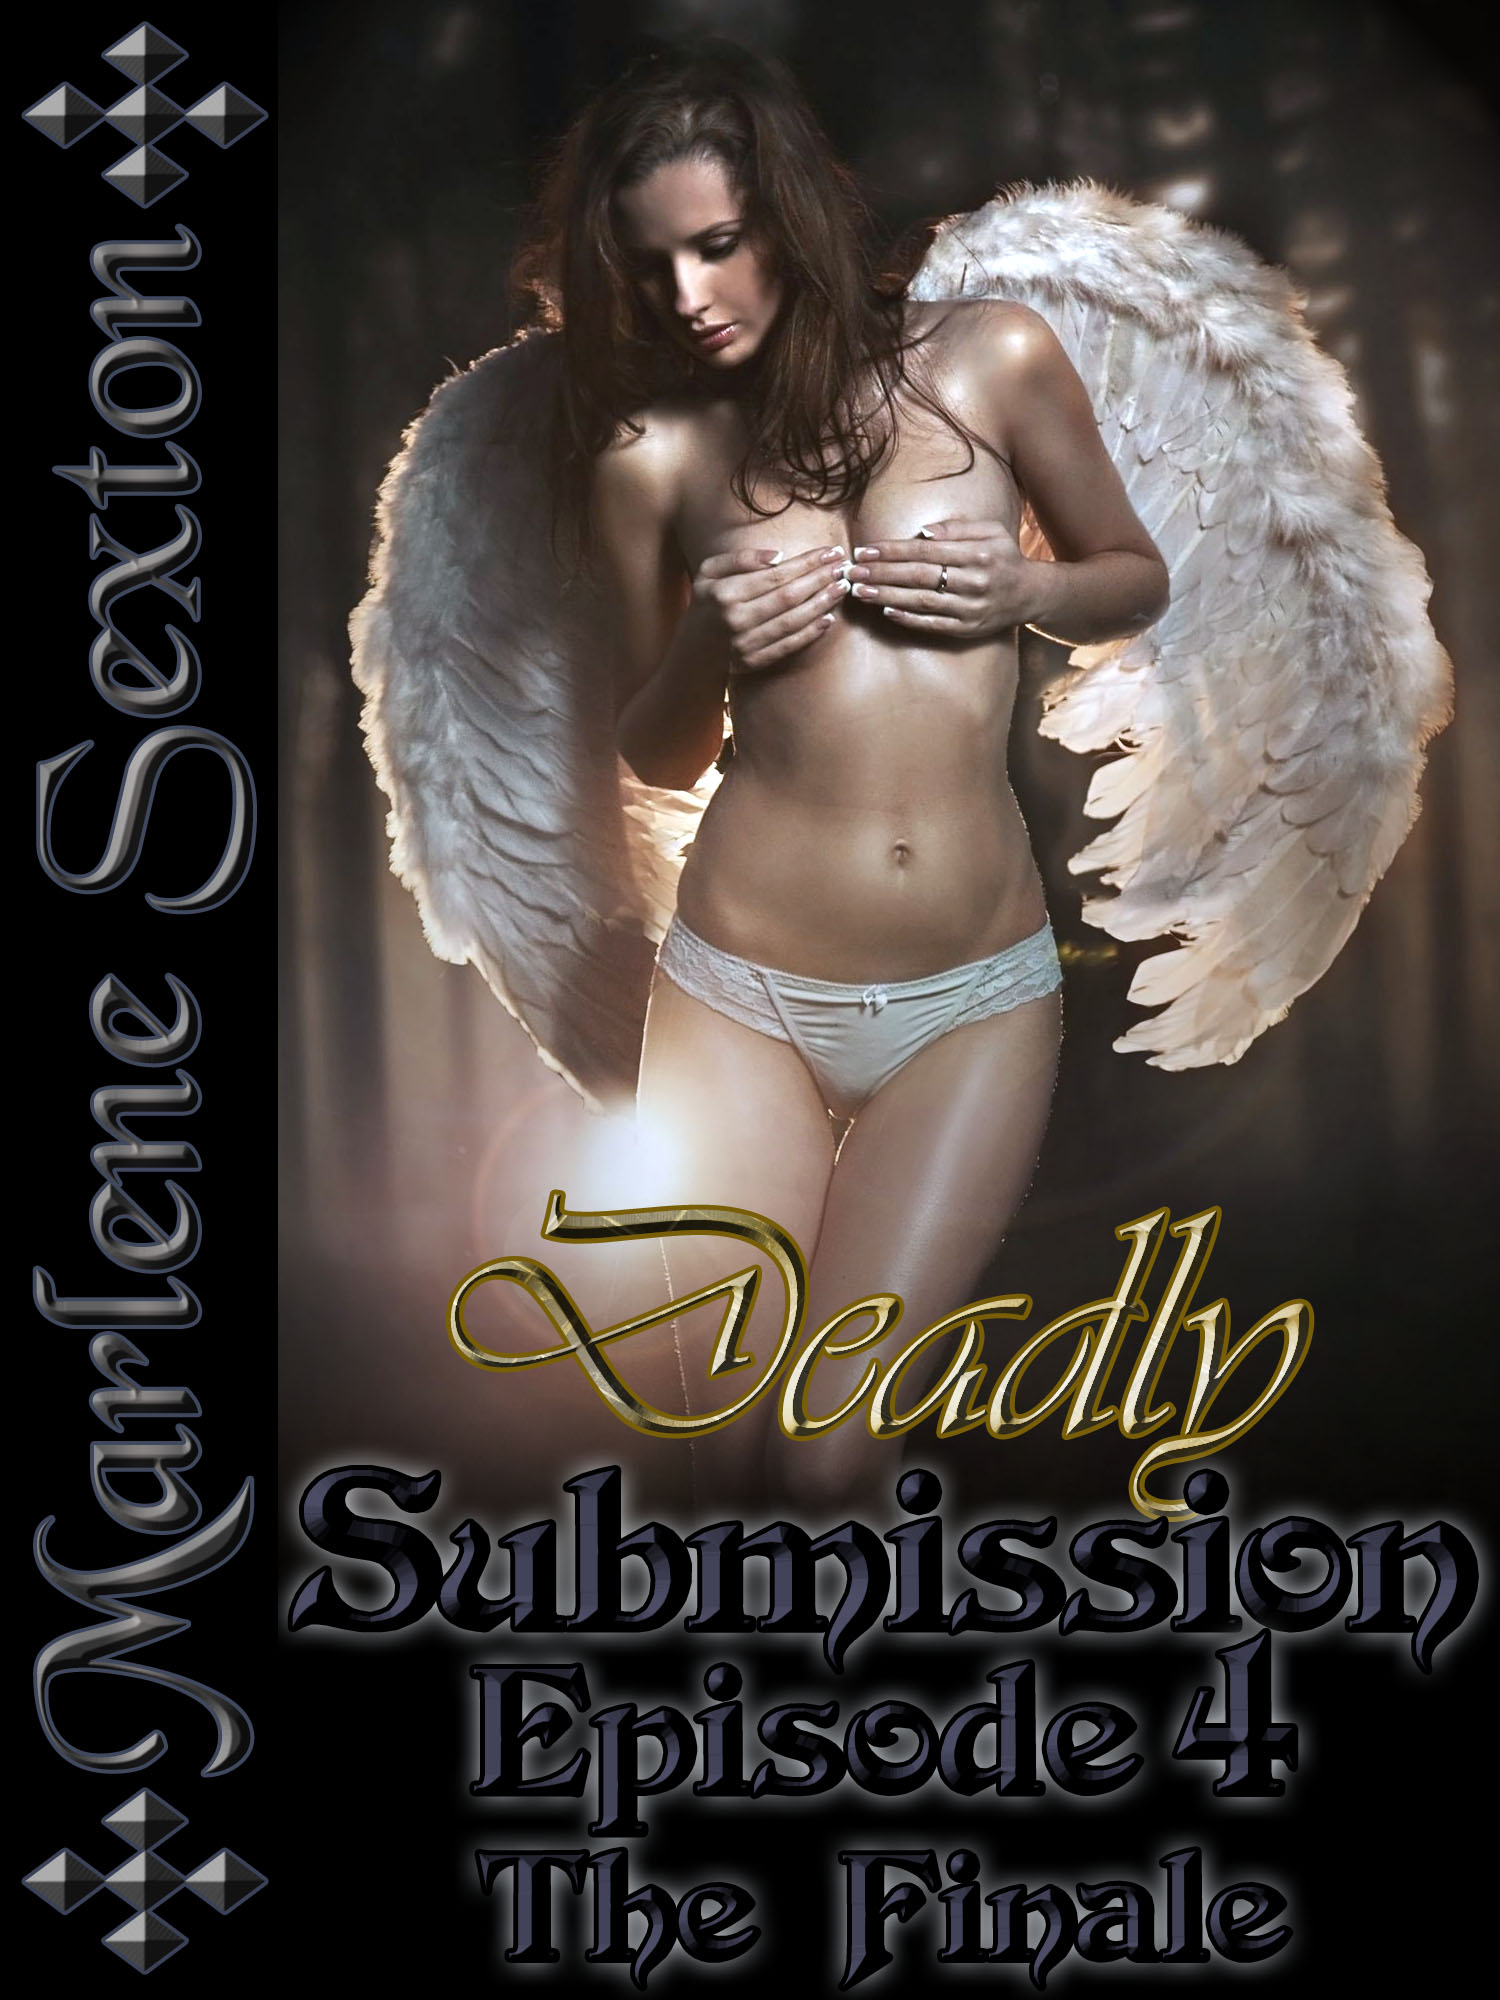 Deadly Submission - Episode 4 - The Finale (An Erotic Thriller)